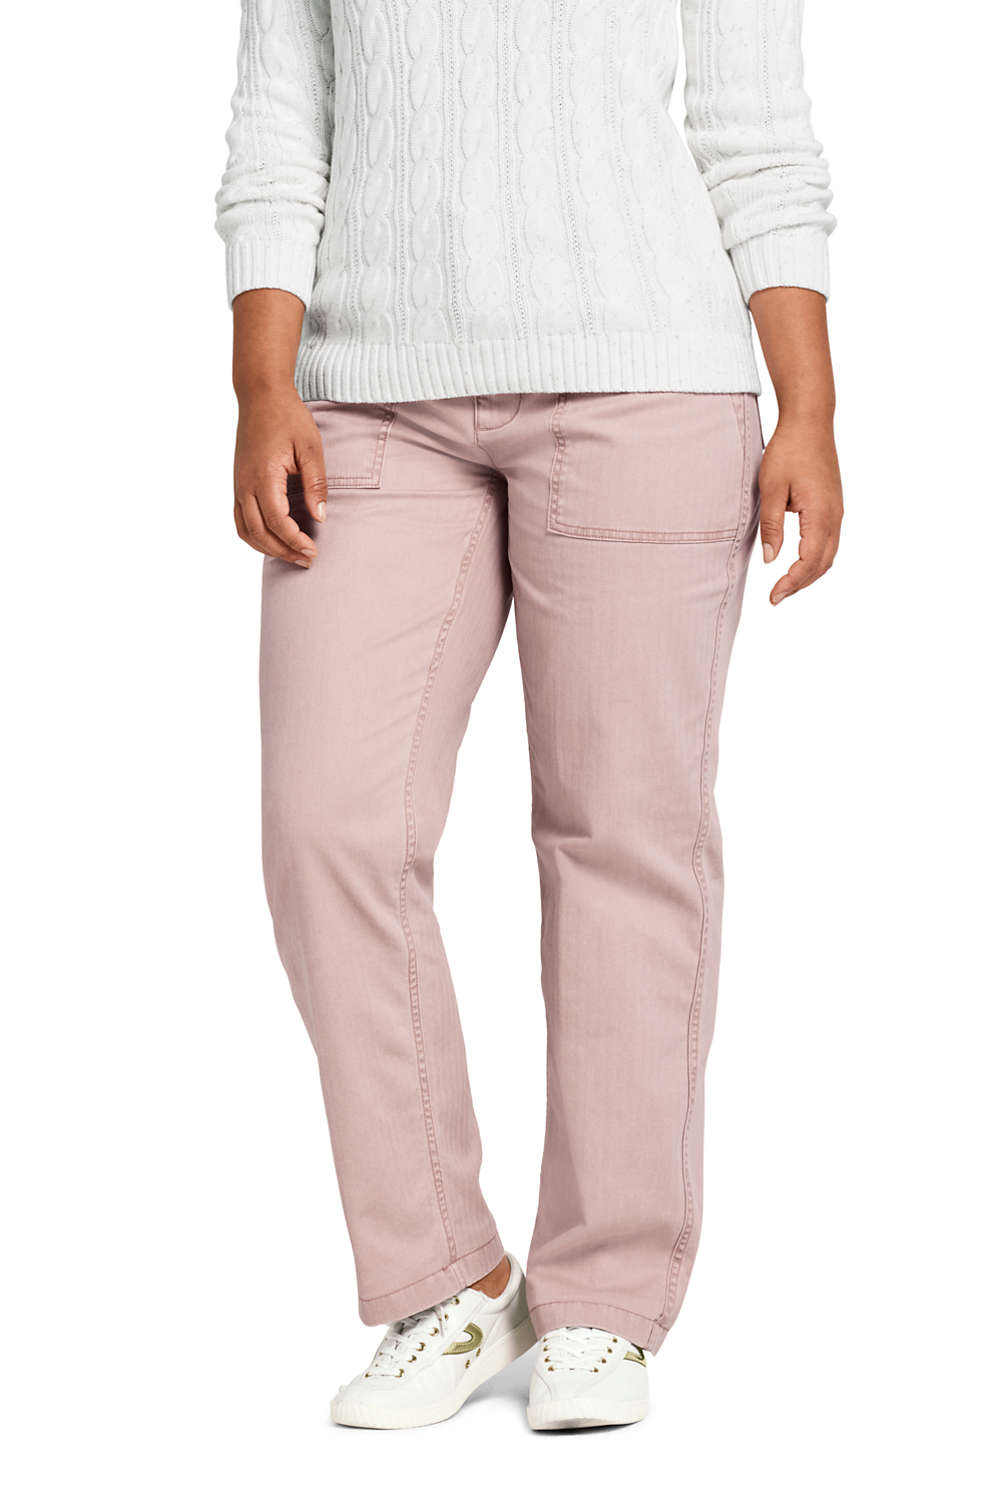 ddb077be9490 Women s Plus Size Mid Rise Field Chino Pants from Lands  End